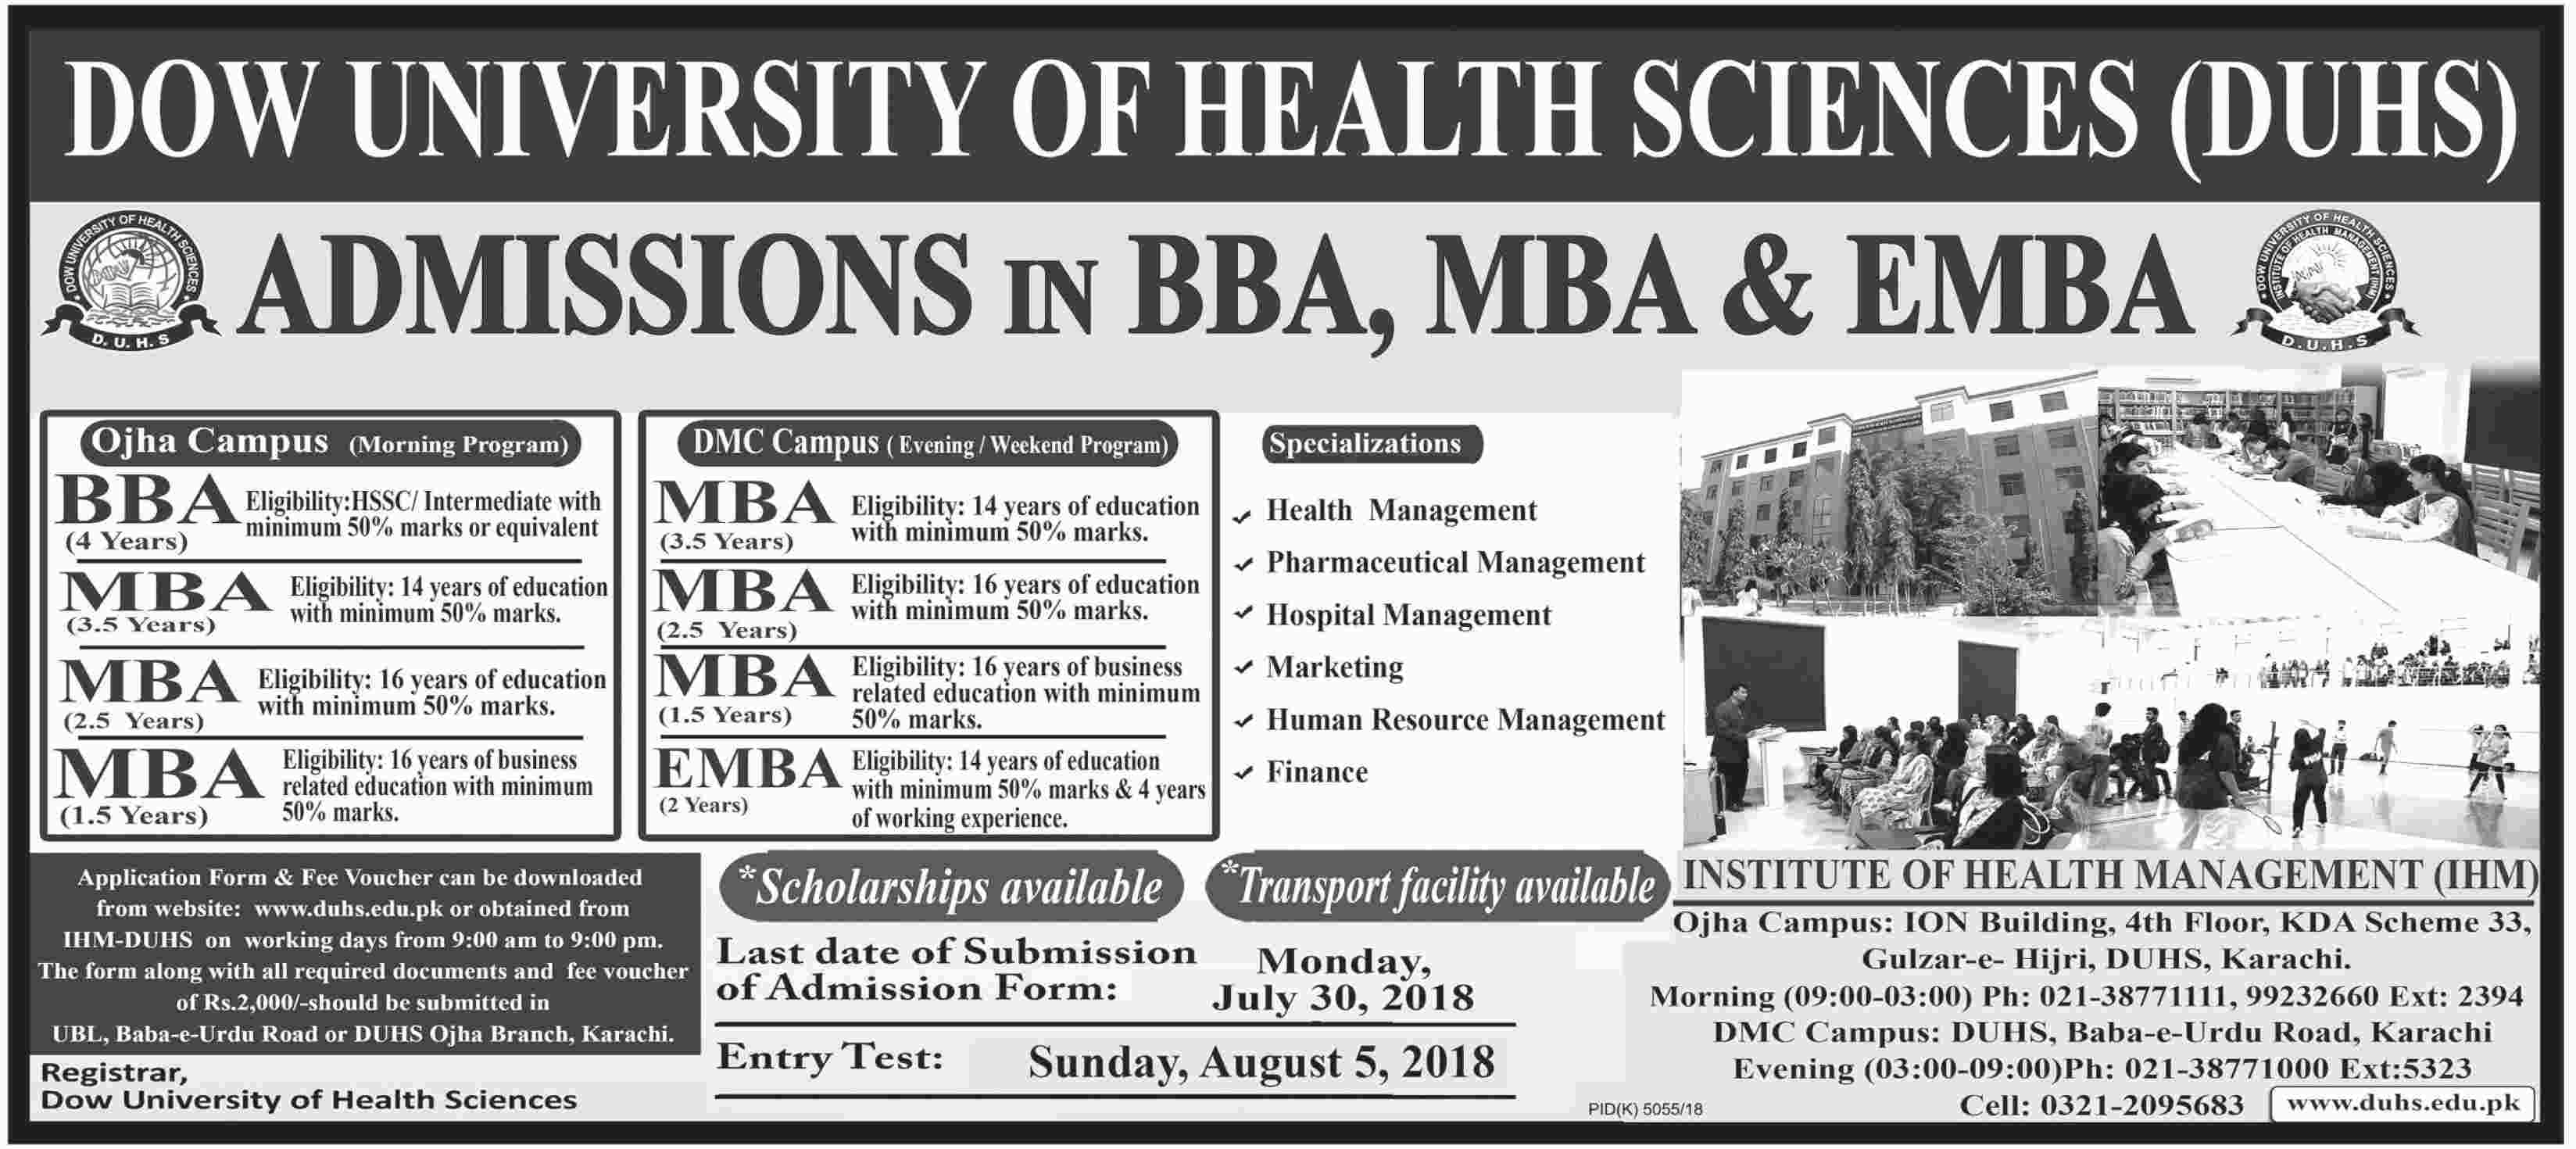 Dow University DUHS BBA, MBA, EMBA Admissions 2018 Form, Last Date